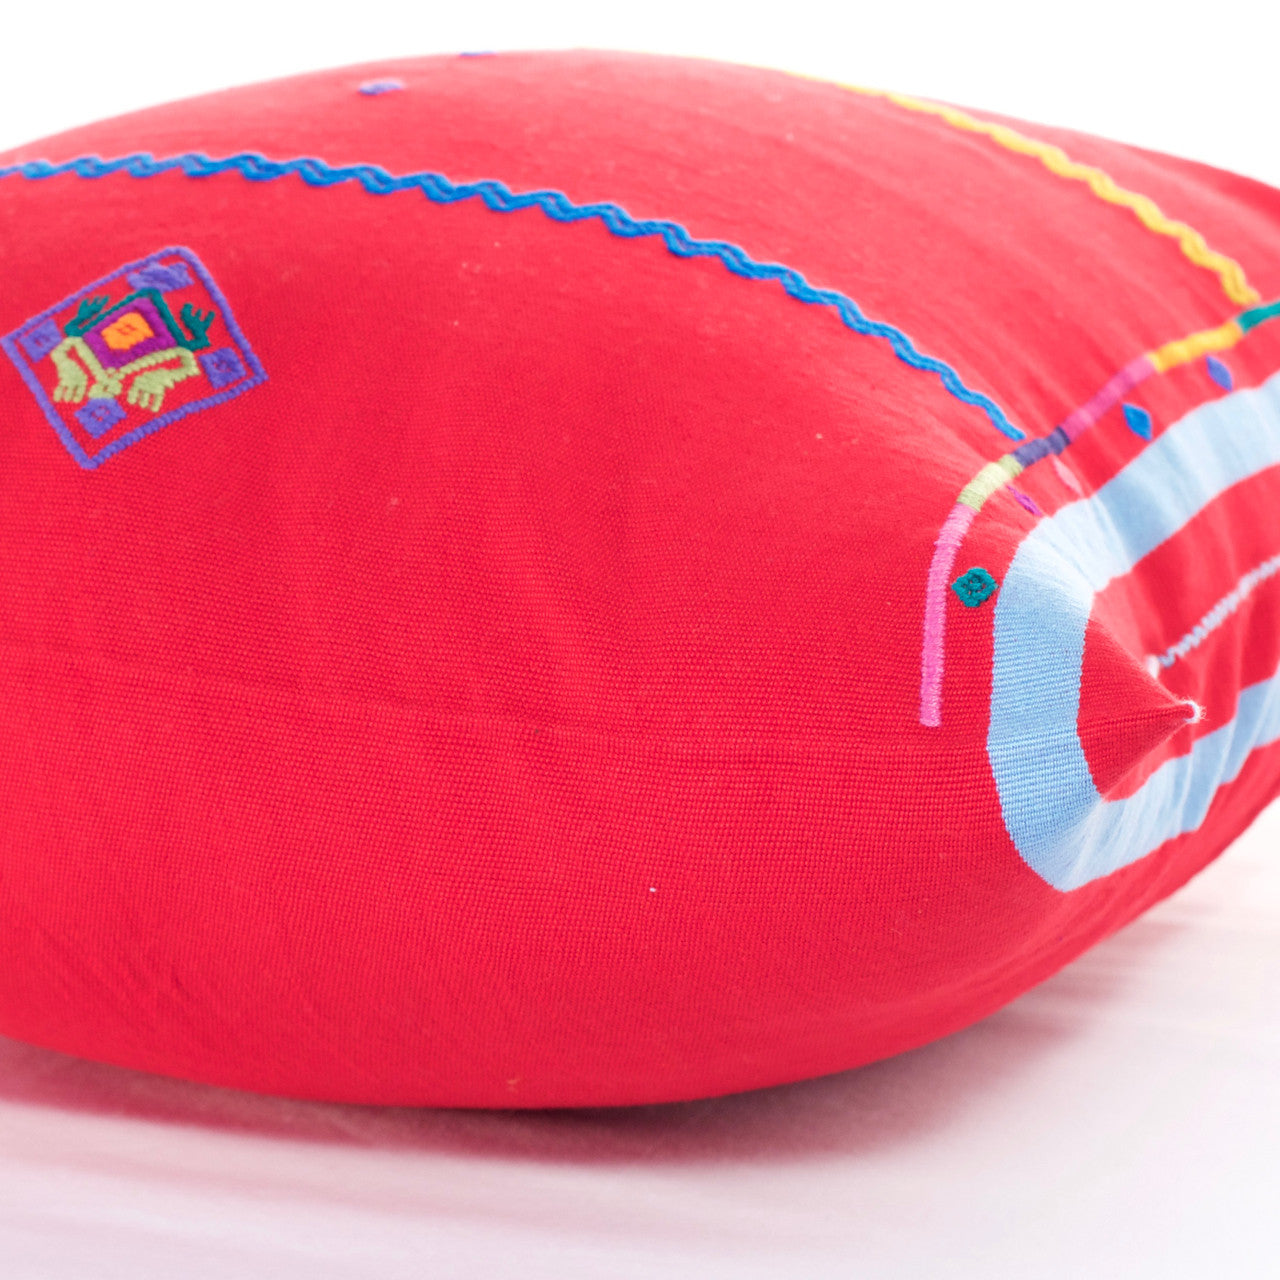 Sapo Cushion - Cielo Collective - Red with Purple & Pale Blue Stripe - 4